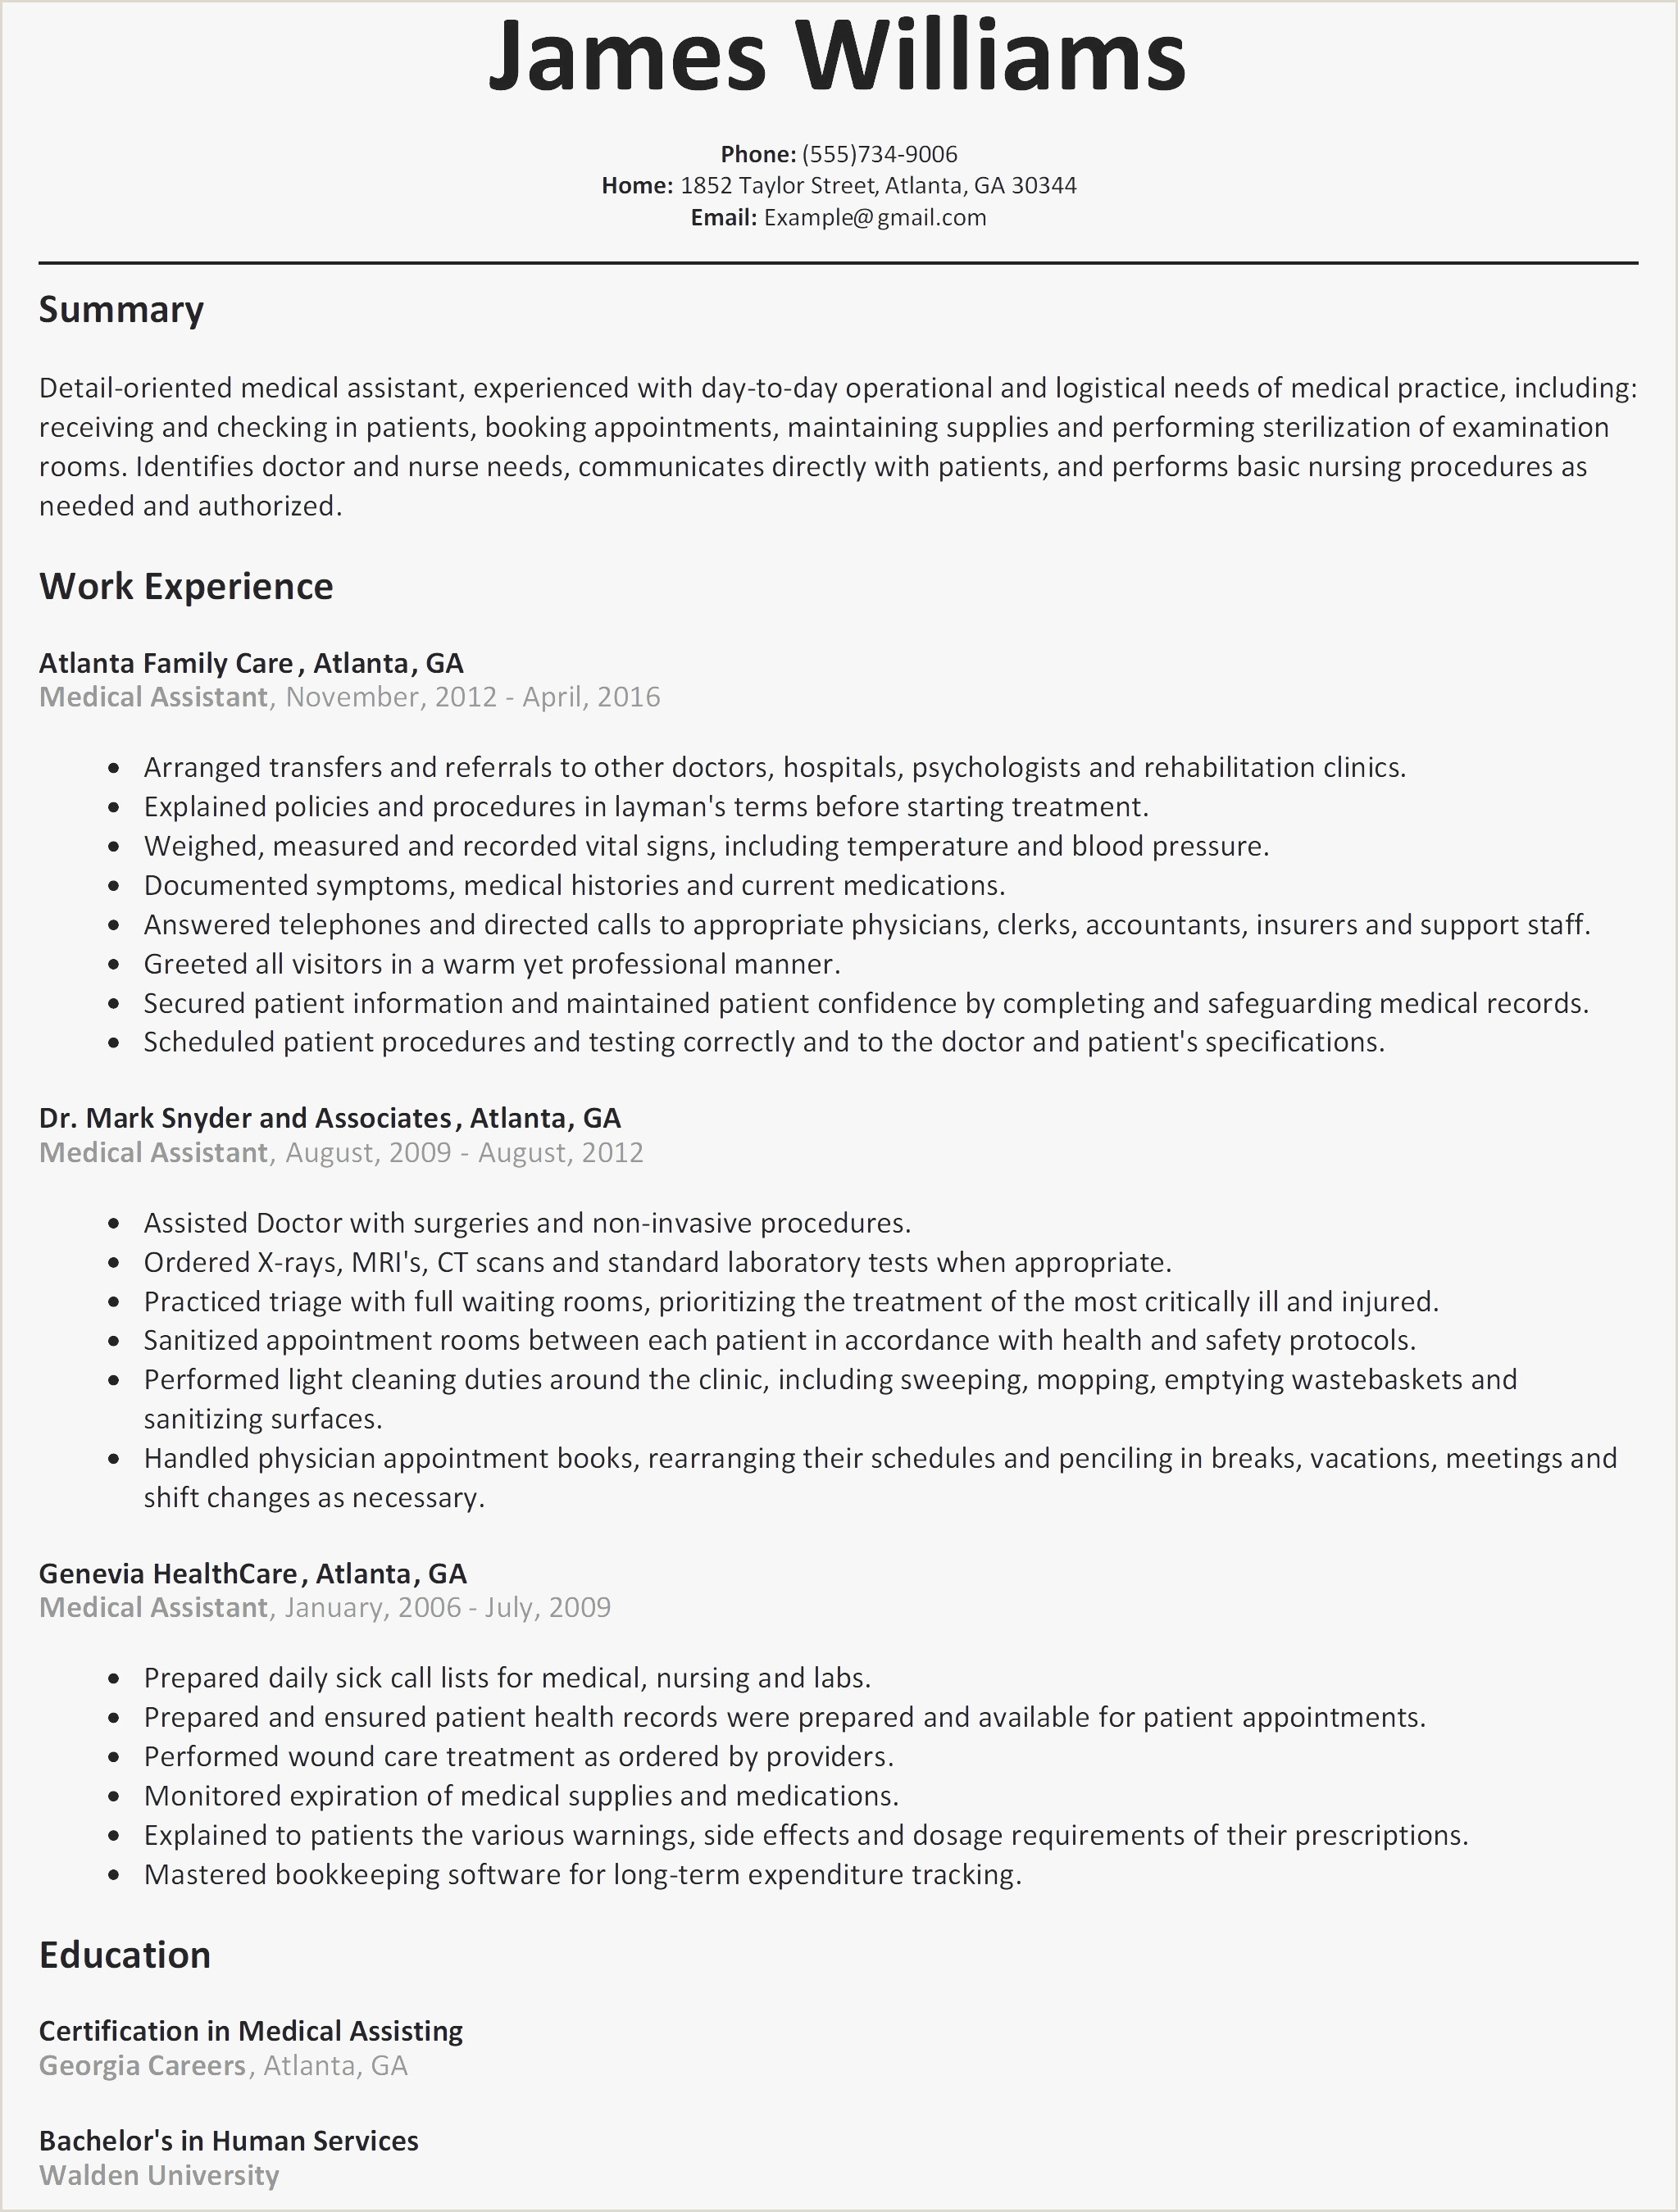 Winning Resume Samples Best Writing A Winning Cv and Cover